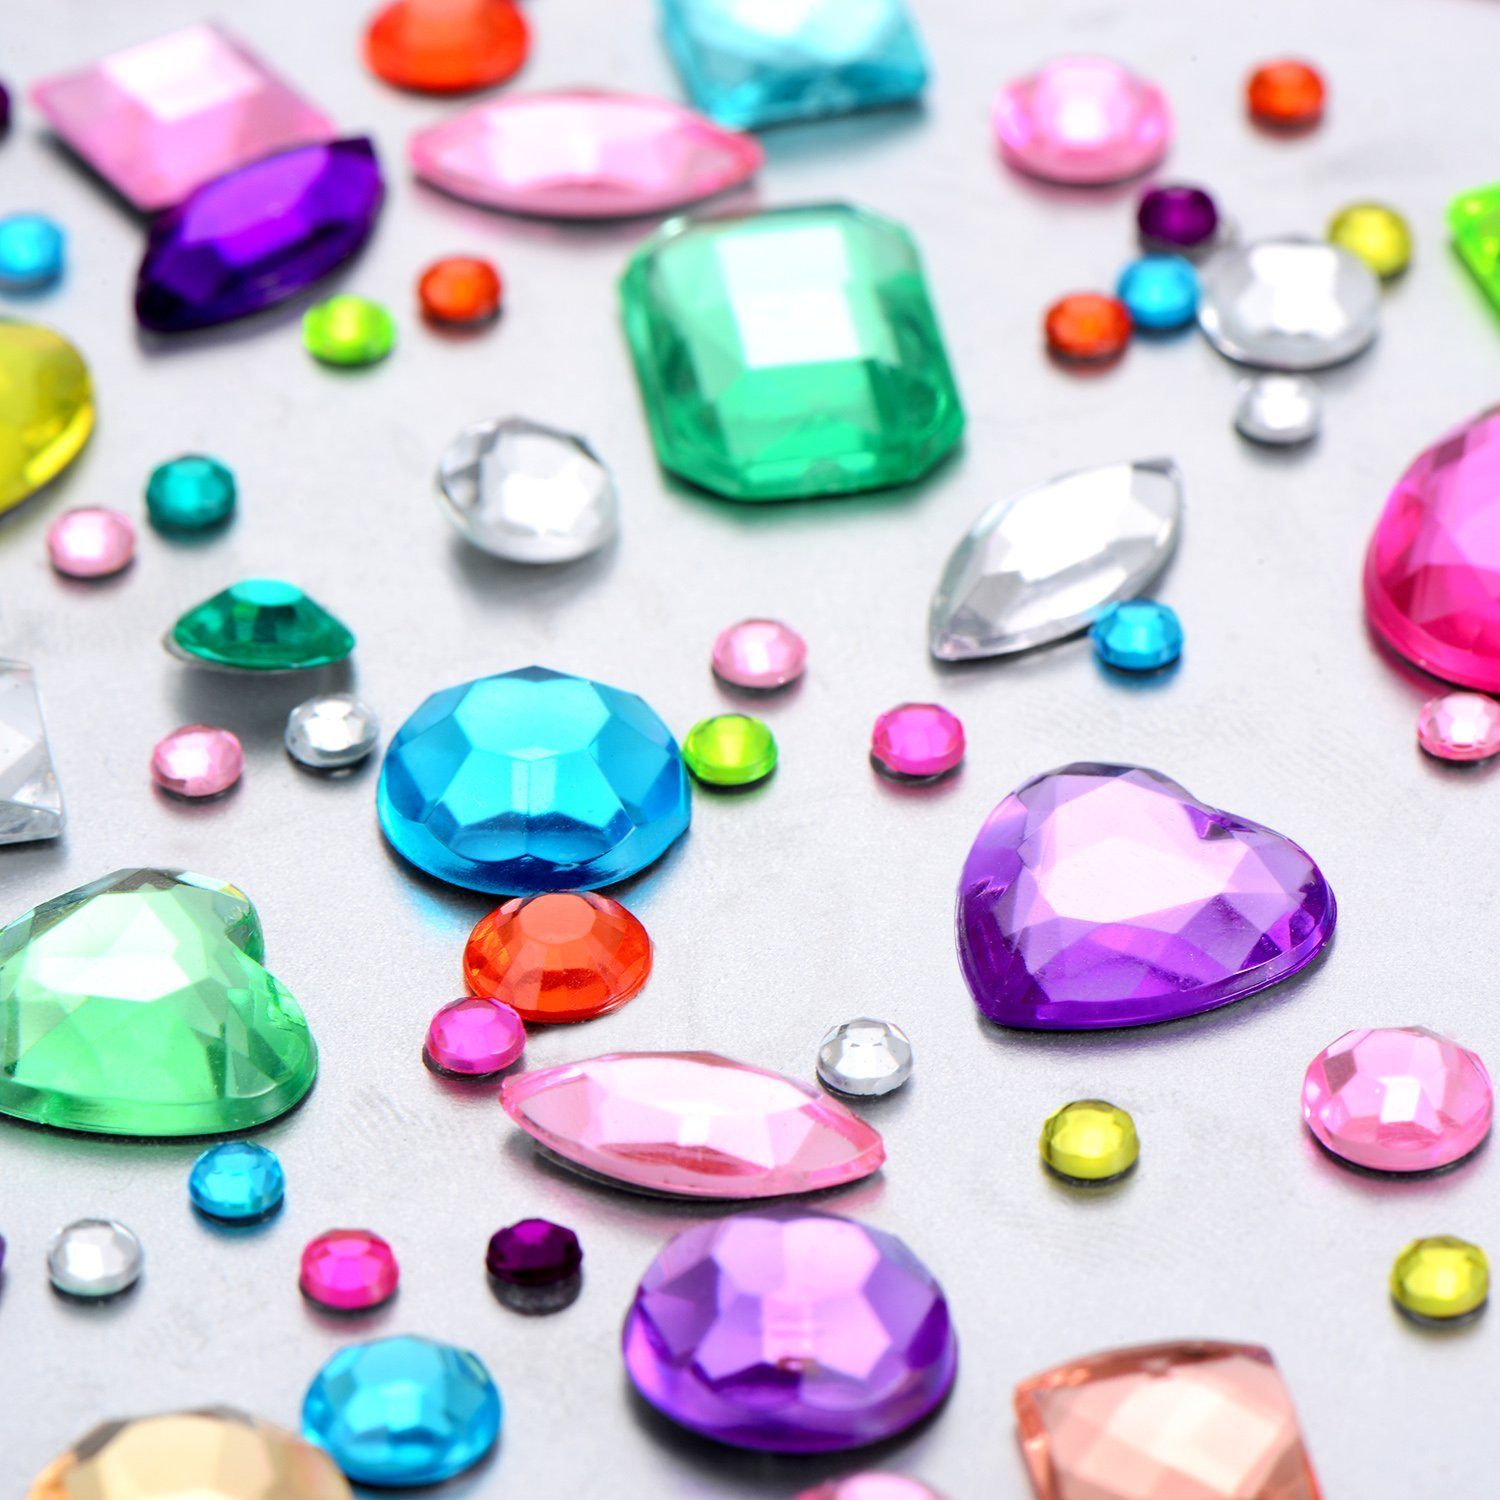 Assorted Size EAST-F Self-Adhesive Rhinestone Sticker Bling Craft Jewels Crystal Gem Stickers 5 Sheets